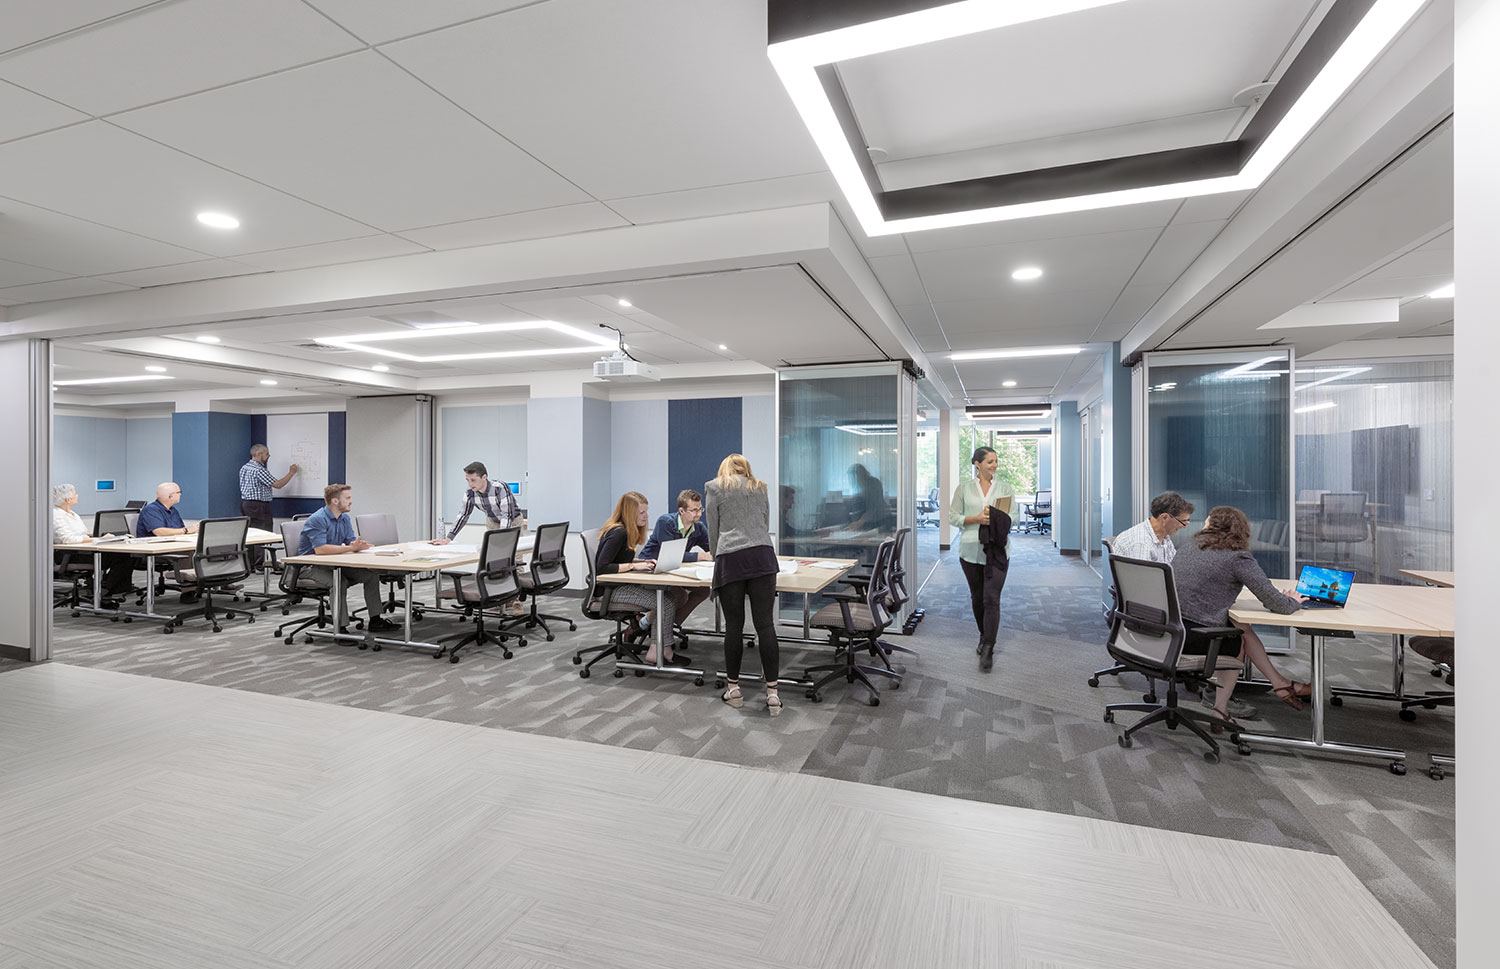 Research Administration Conference Rooms with flexible walls open